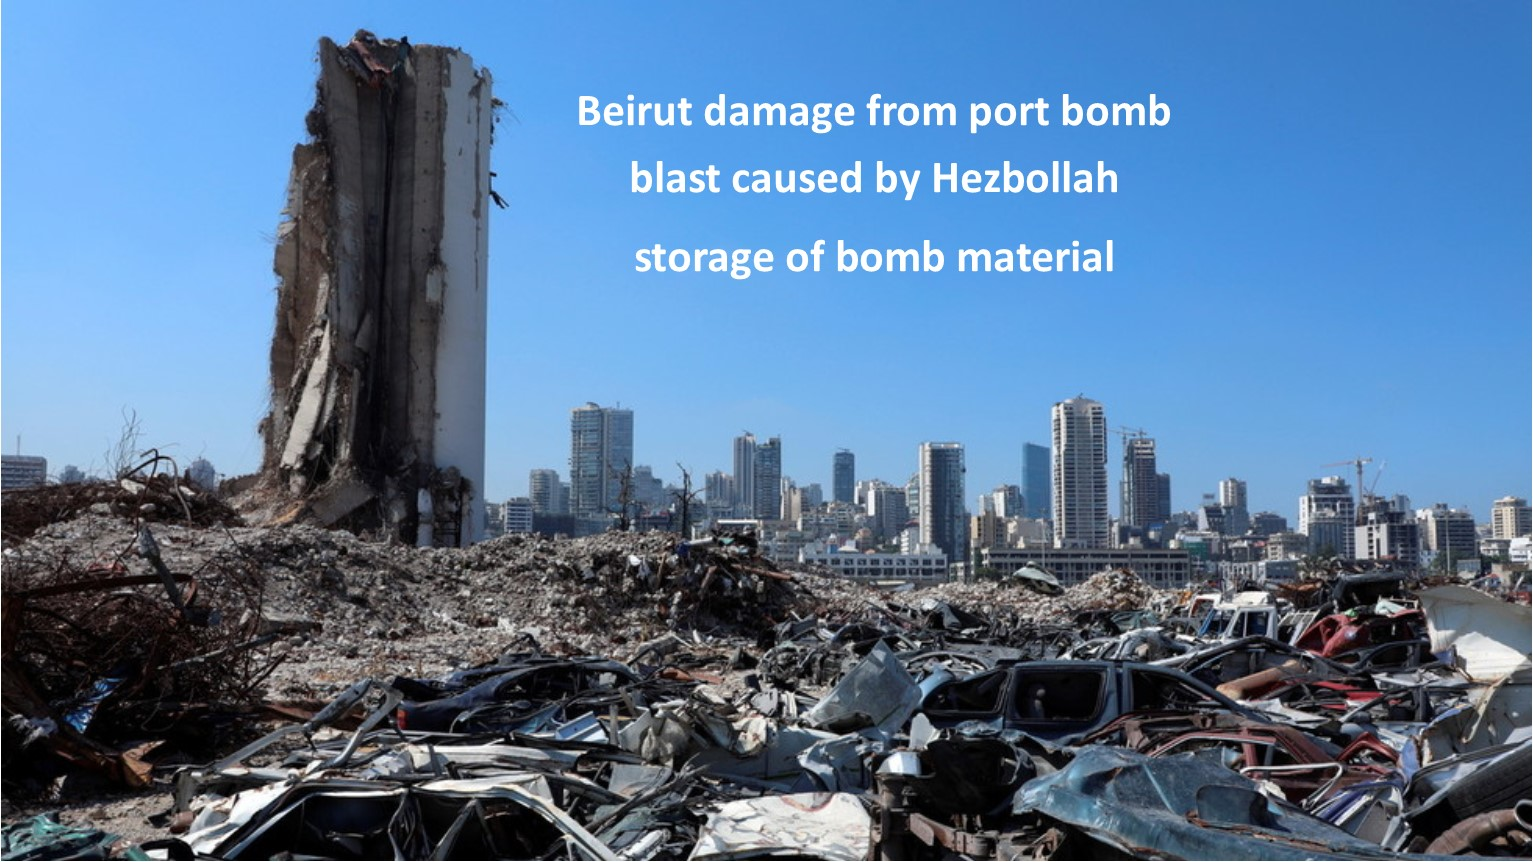 Beirut explosion leading to its failure